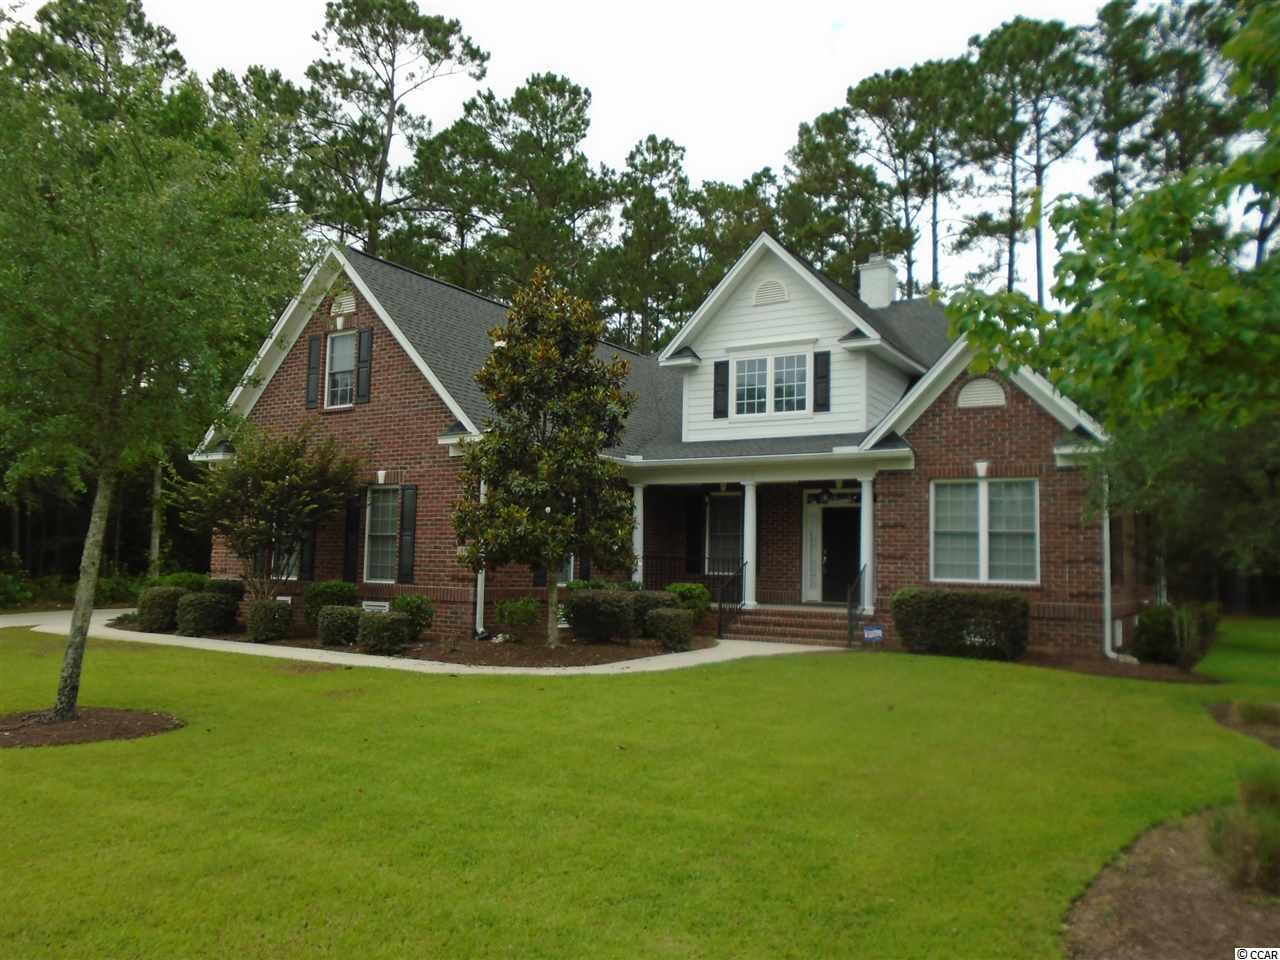 Fantastic opportunity to own this estate home featuring southern charm with 4 bedrooms, plus large 32x15 bonus room.  4th bedroom could be den/study and features french doors and a closet located on the 1st floor.  Open floor plan.  Perfect for entertaining.  Custom maple cabinets throughout.  Formal dining room, breakfast bar, and eat in nook.  Kitchen features island with prep sink, loads of counter space, pantry, under counter lighting, Frigidaire Professional Series S/S appliances (double wall oven), 5 burner gas stove, hood, and dishwasher. Oversized laundry room close to master bedroom.  Master suite features large sitting area, spacious walk in closet, and beautiful views.  Great room features open staircase and gas fireplace.  CATS hardwired for networking.  Relaxing front porch.  Finished 3-car garage with 8' high doors.  French doors from great room to 16x15 screened in porch wired for outdoor speakers and a large grilling patio complete with natural gas hookup.  Backyard offers privacy and a beautiful park like setting with view of woods from most rooms in the home and relaxing screened in porch.  Several young live oak trees.  Neighborhood features private boat dock, pool, basketball, children's play yard, and stocked ponds.  Close to the beach, shopping, restaurants, and all that Myrtle Beach and Murrells Inlet has to offer.  A must see.